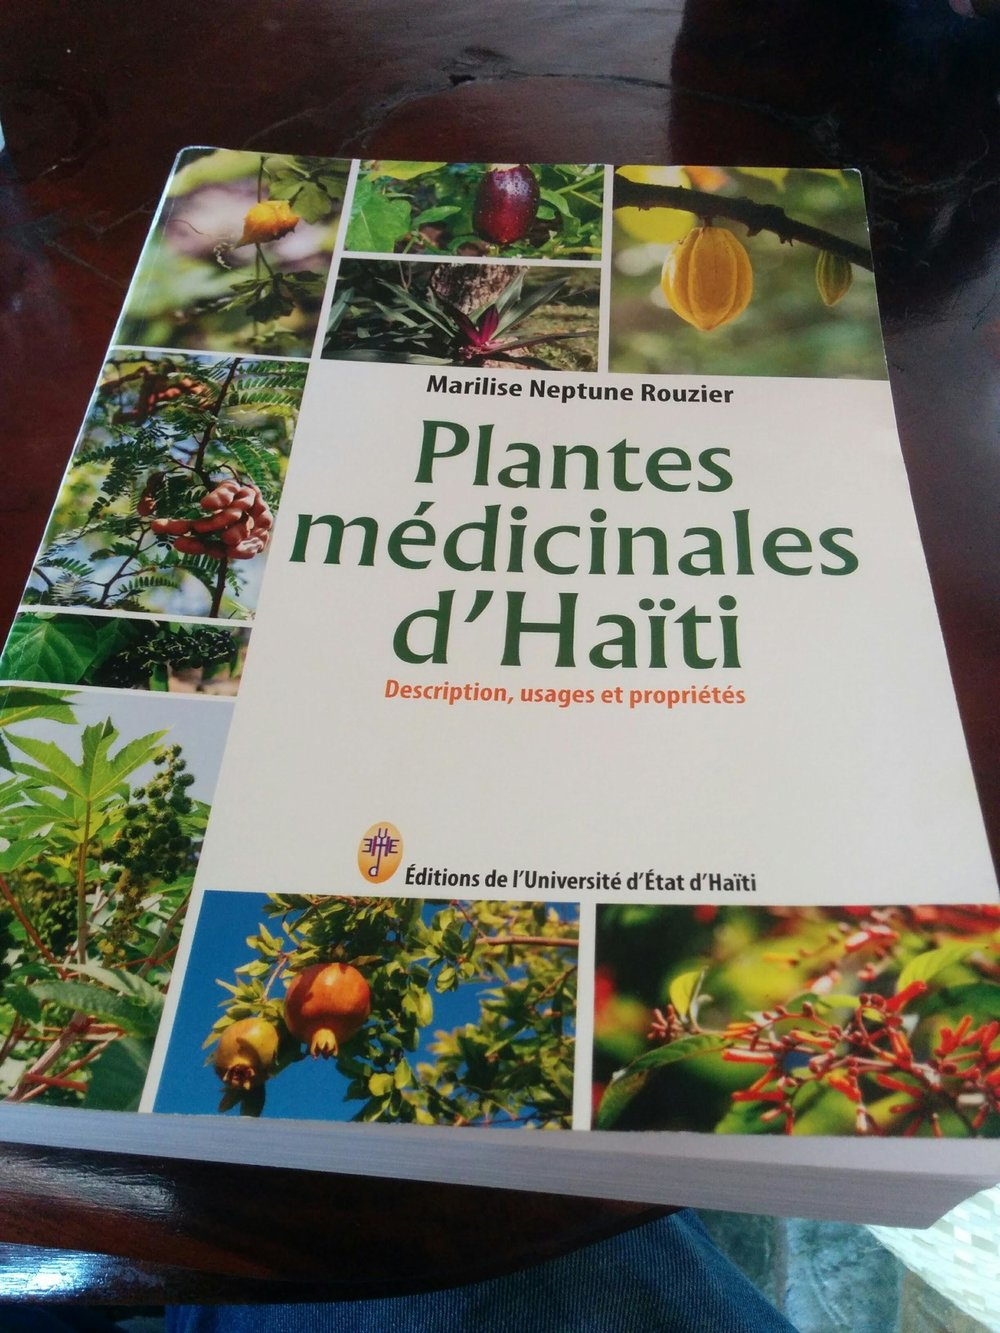 Just to make sure i wouldn't have to use my health insurance, I picked up this amazing book about all of the medicinal plants in Haiti, complete with thorough references it definitely beats asking 3 people what a plant does and seeing if I get the same answer. I did always get the same answers by the way, Haitians know their plants like nobody's business.